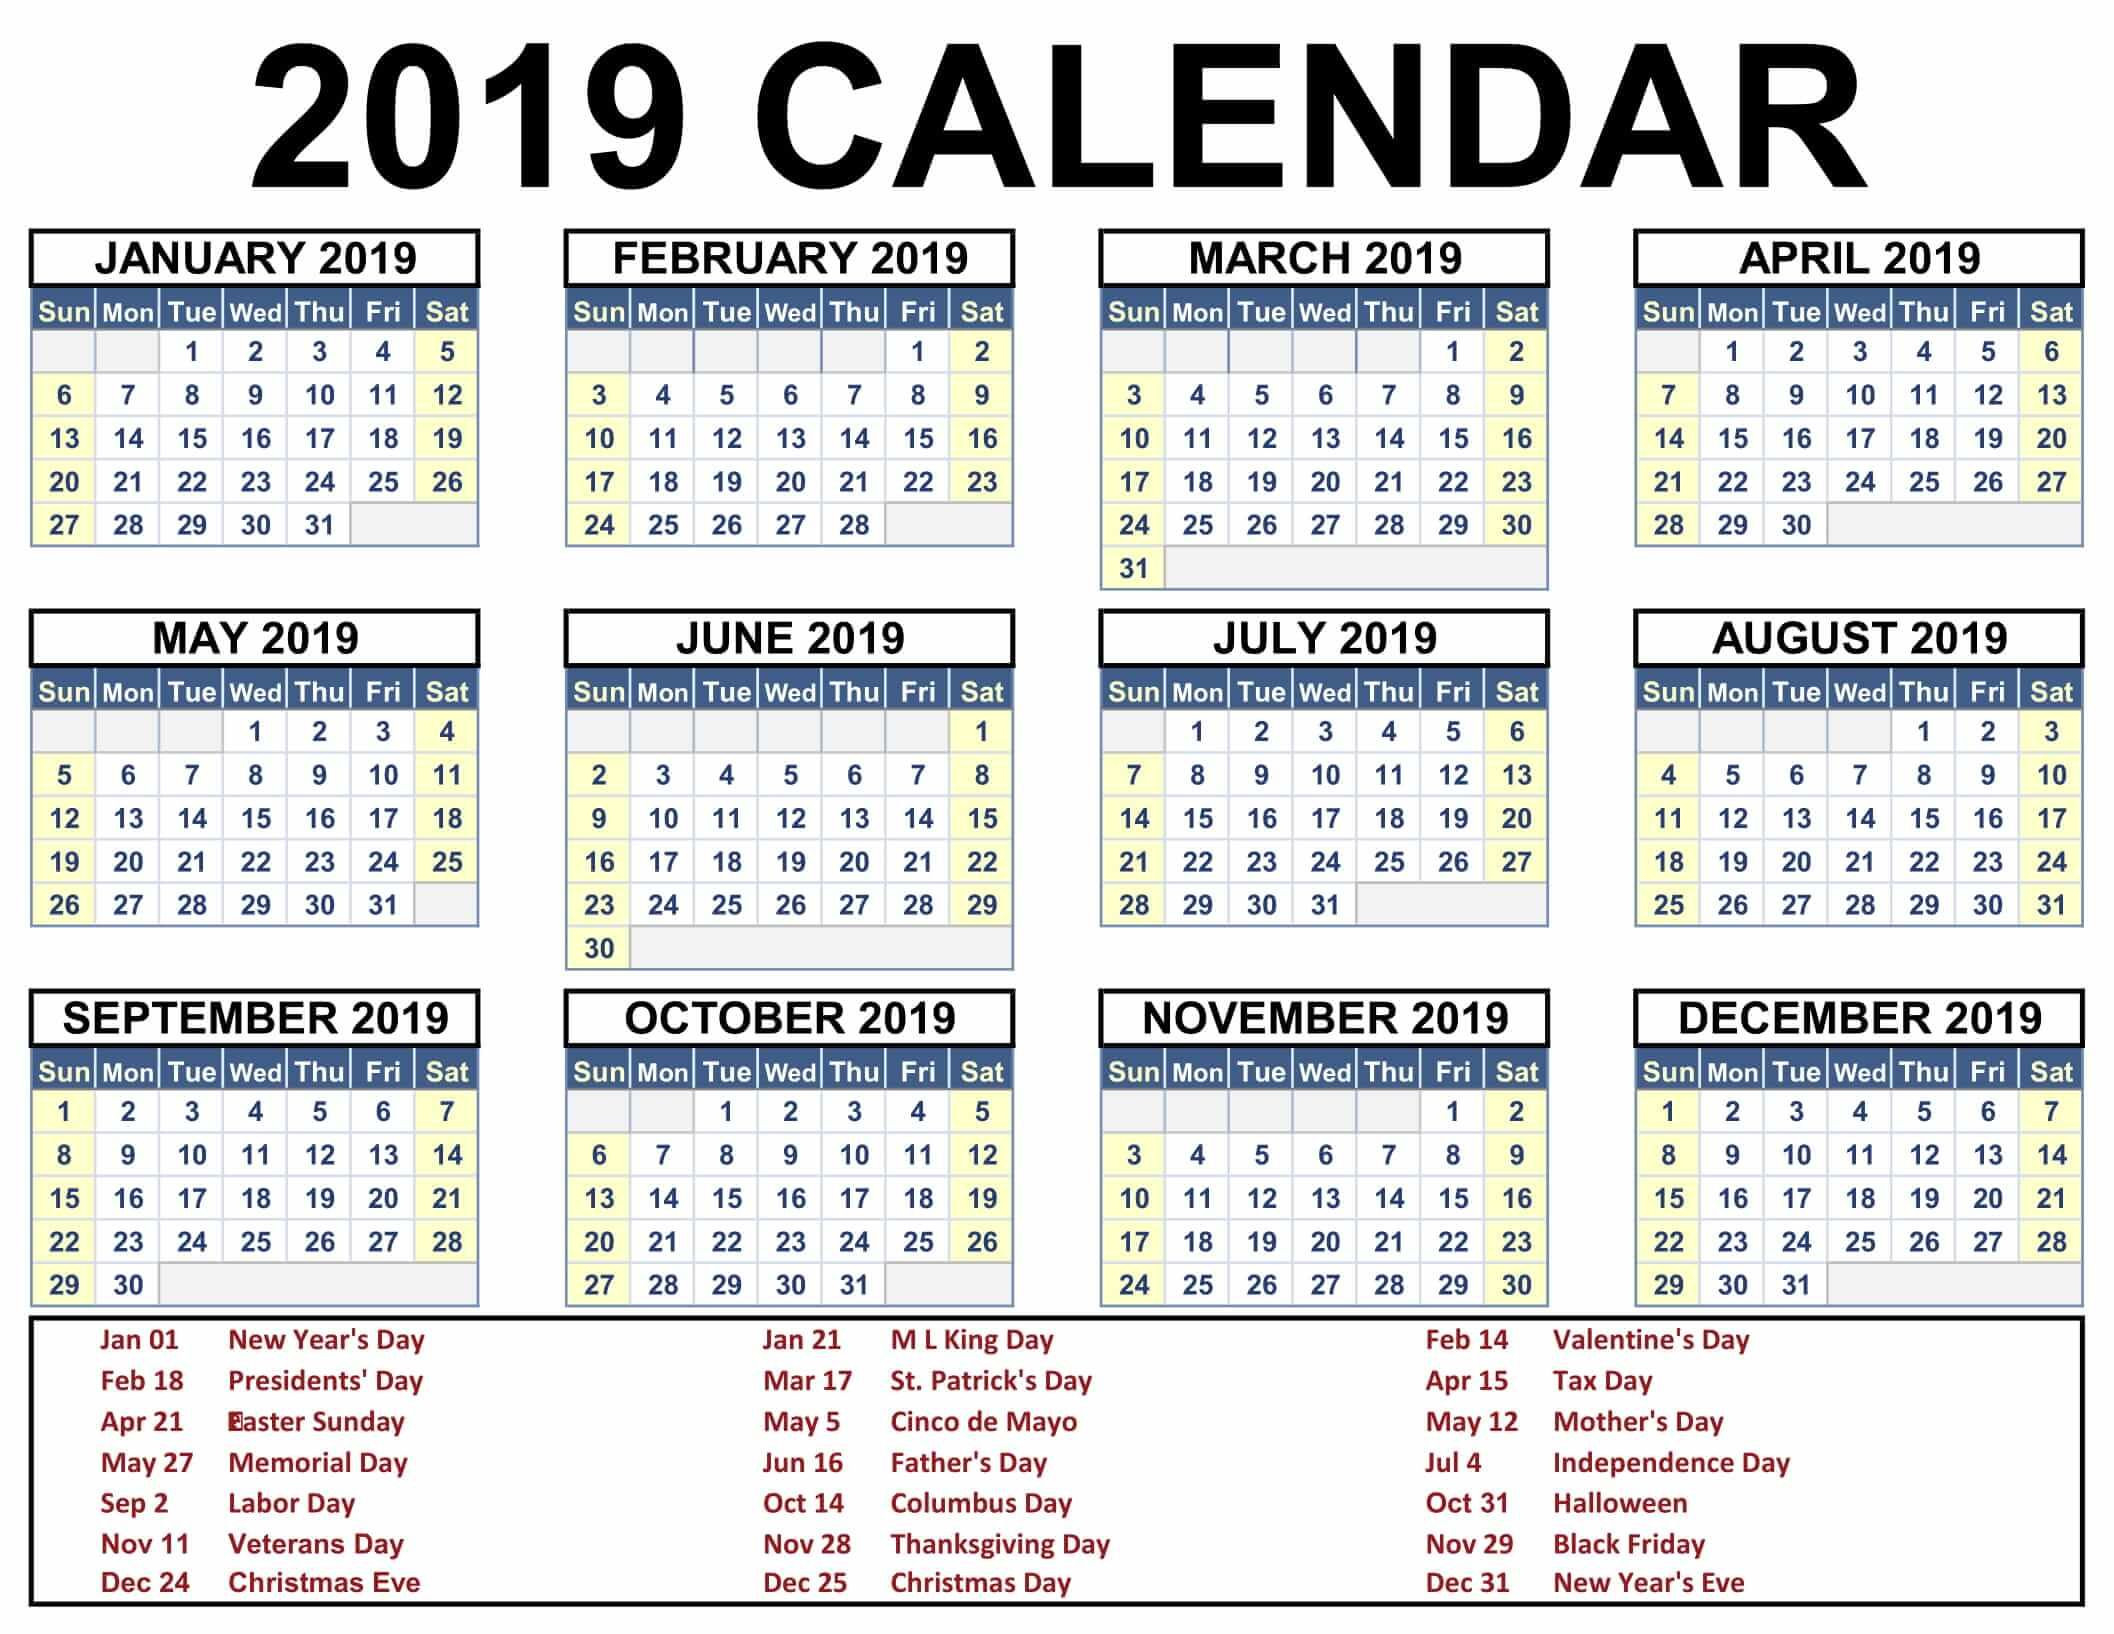 2019 Calendar With Jewish Holidays - Free Download-Pic Of Hebrew Calendar June 2021